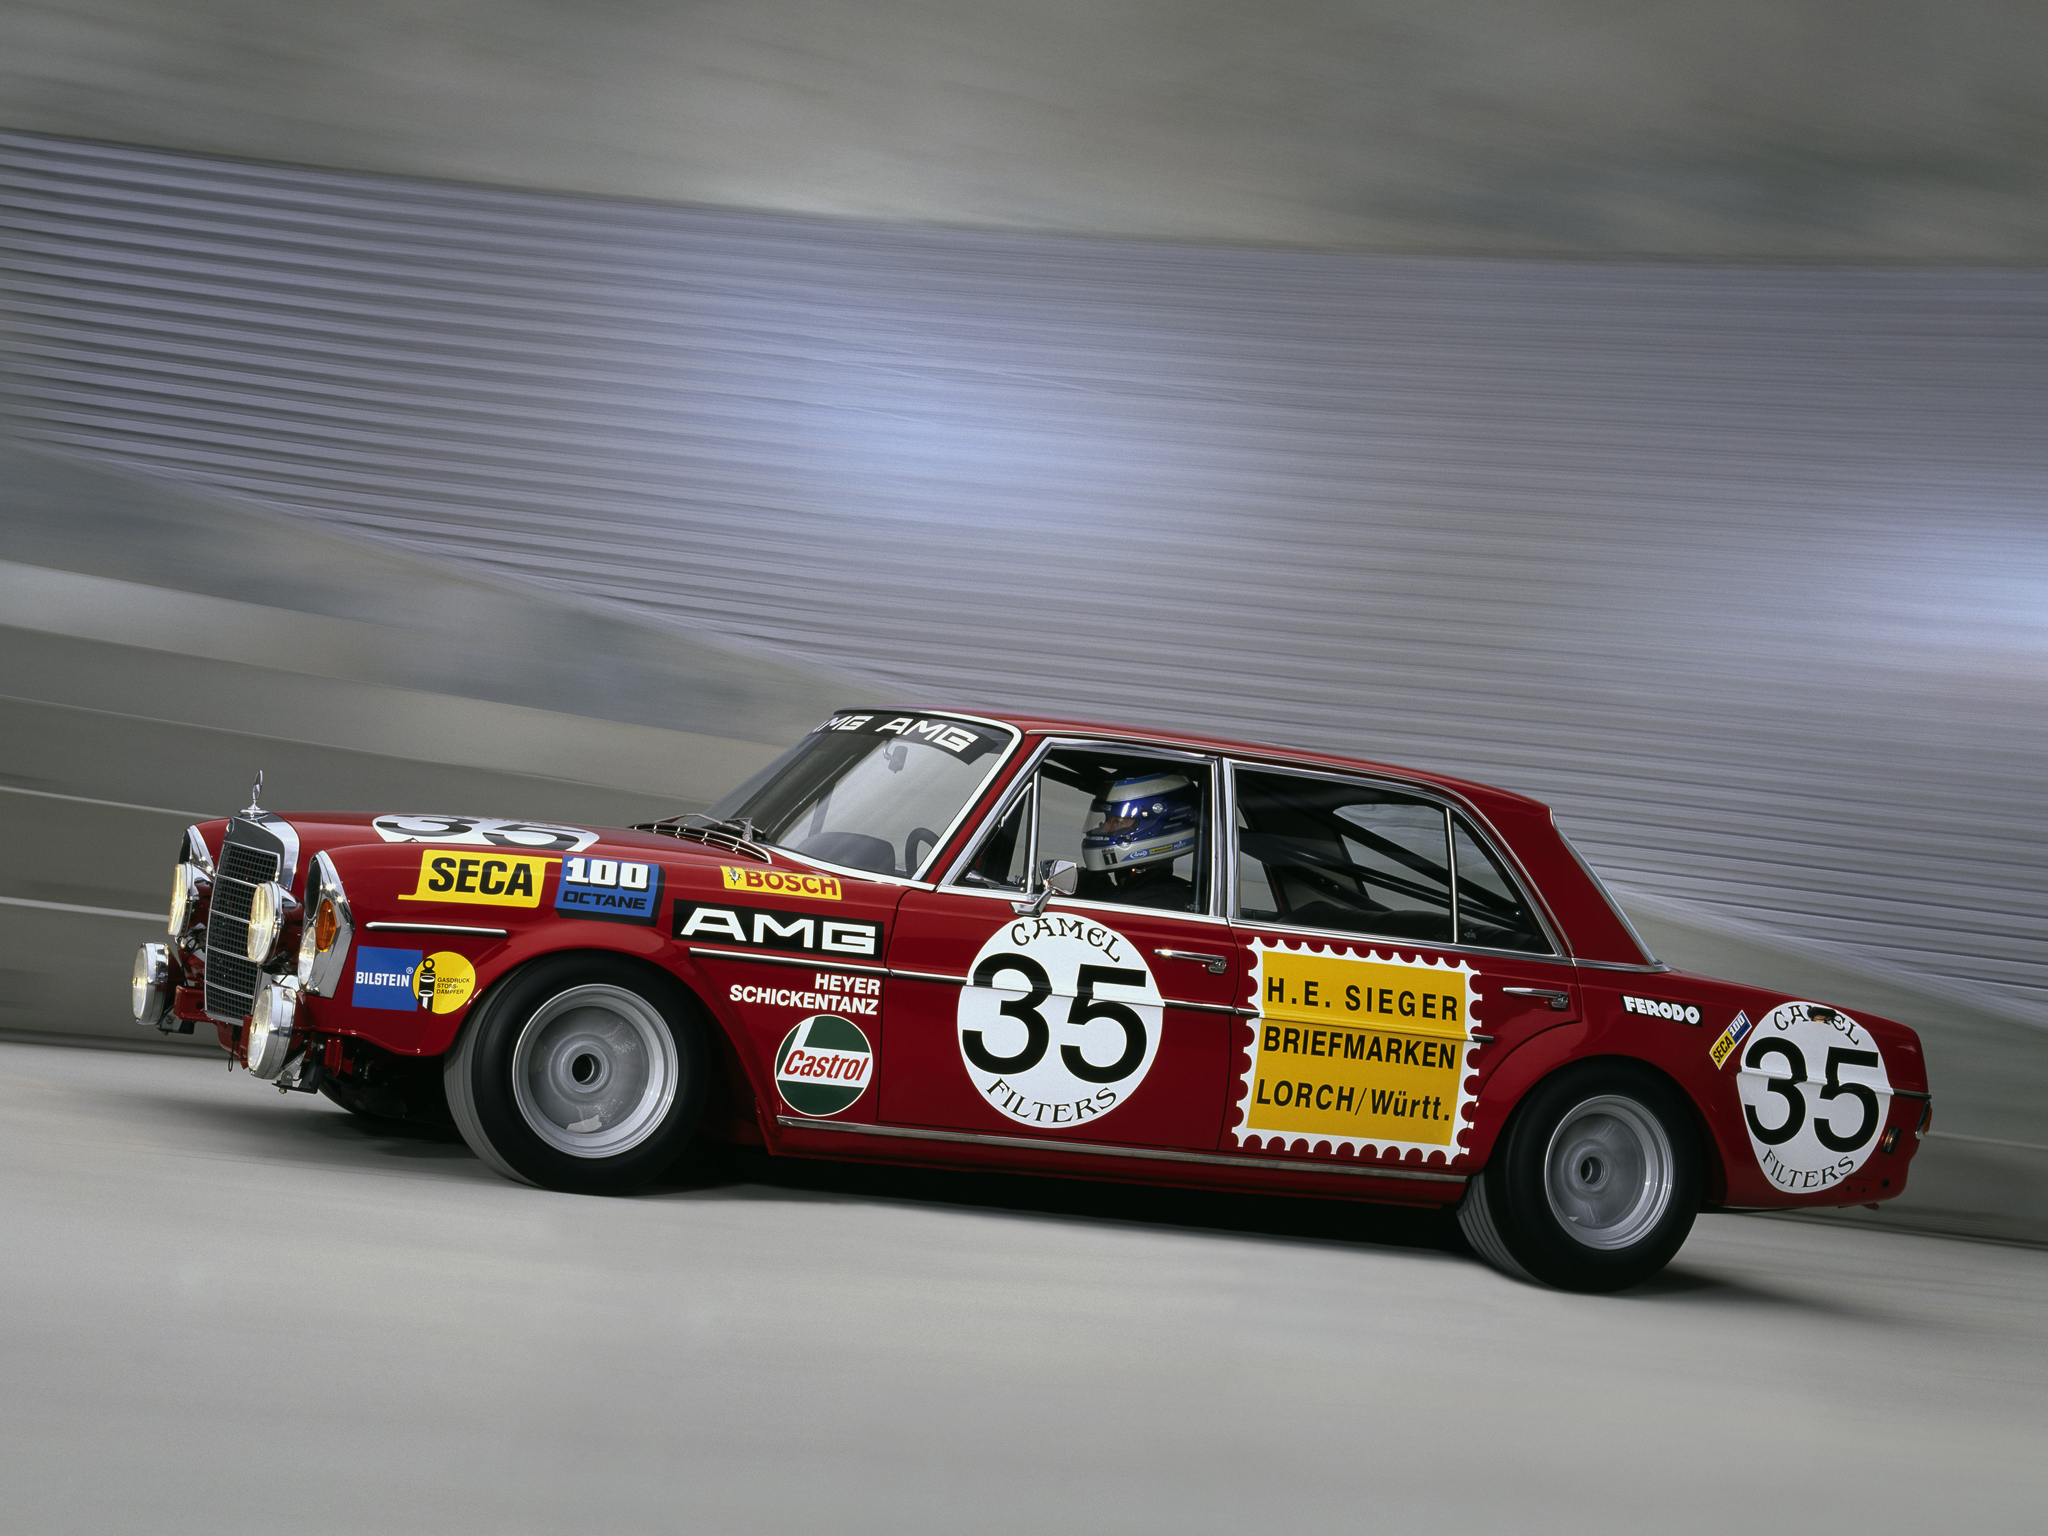 1971 mercedes benz amg 300 sel 6 3 race car w109 racing f for Mercedes benz race